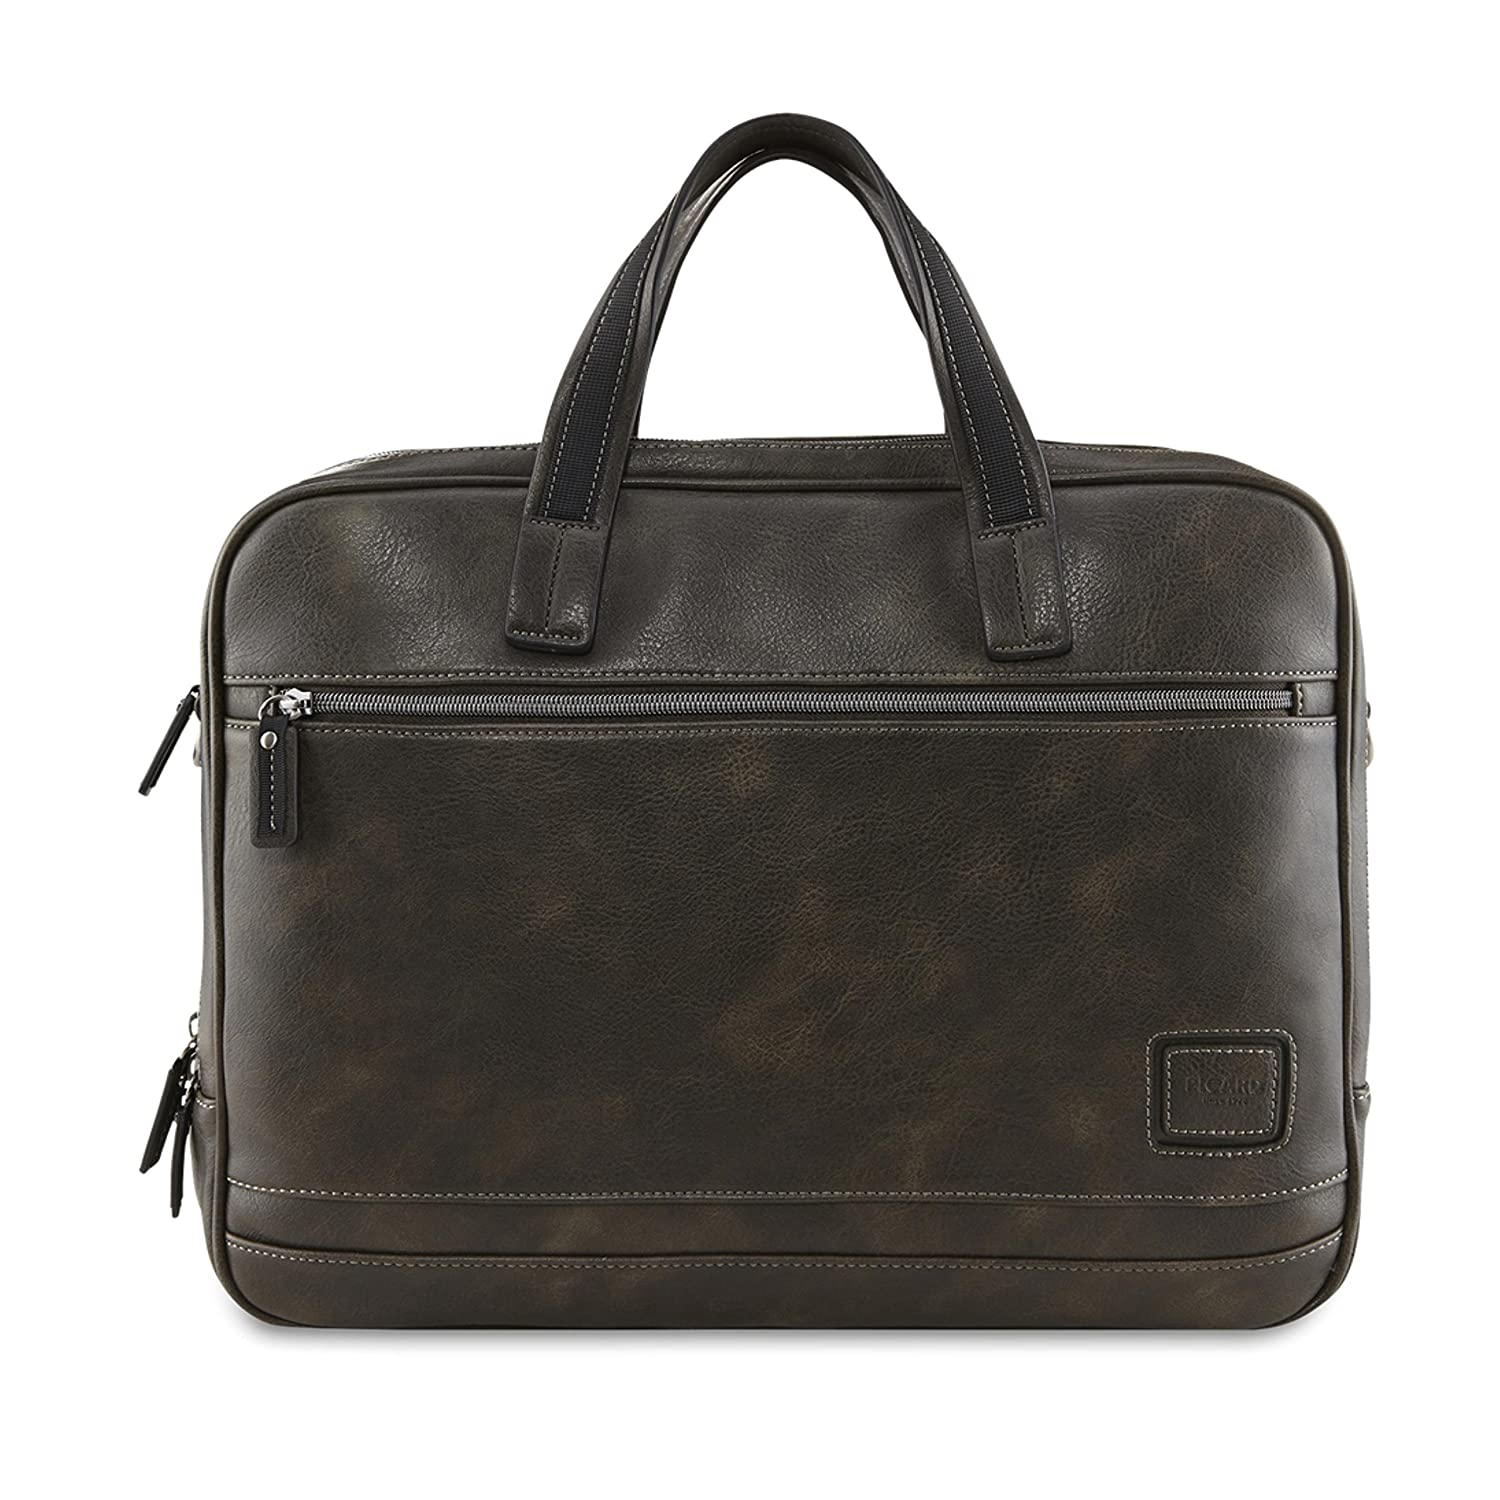 Picard Breakers Laptoptasche 40 cm Graphit Picard - Lederwaren